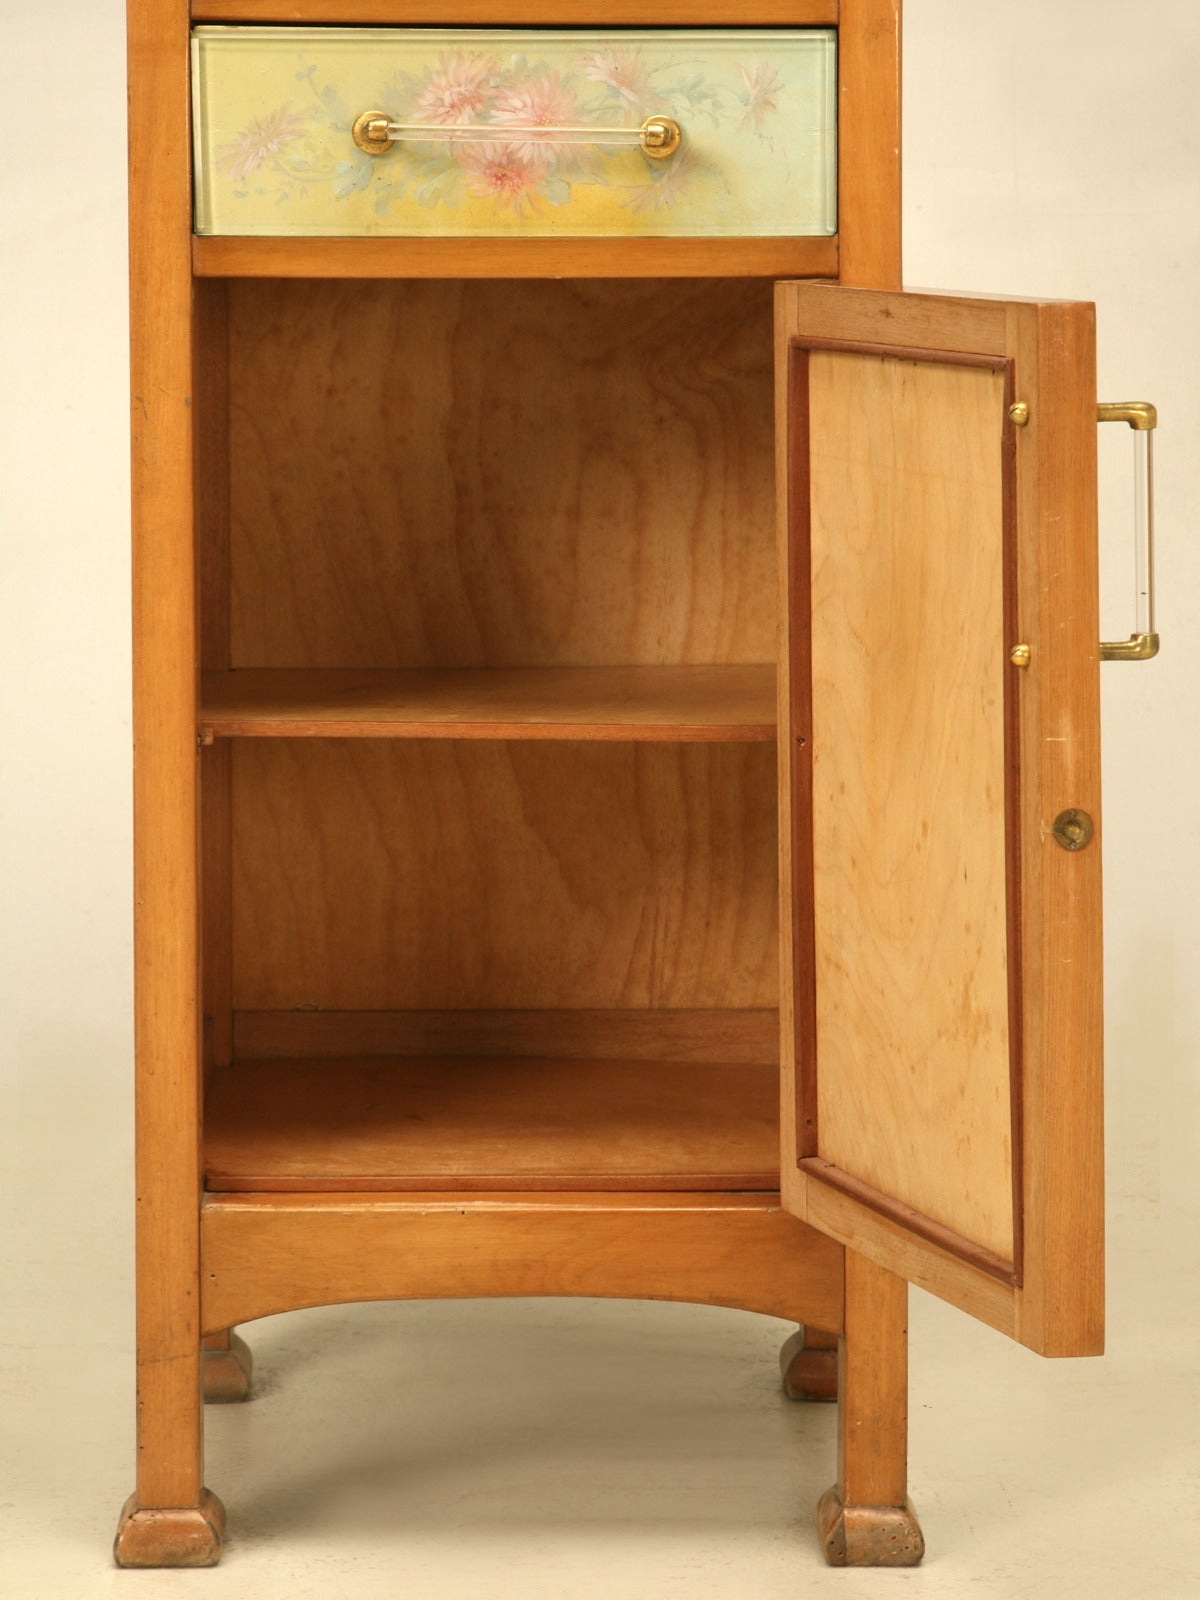 Spanish Bathroom, or Nightstand Cabinet with Paintings by Tolosa-Alsina For Sale 6